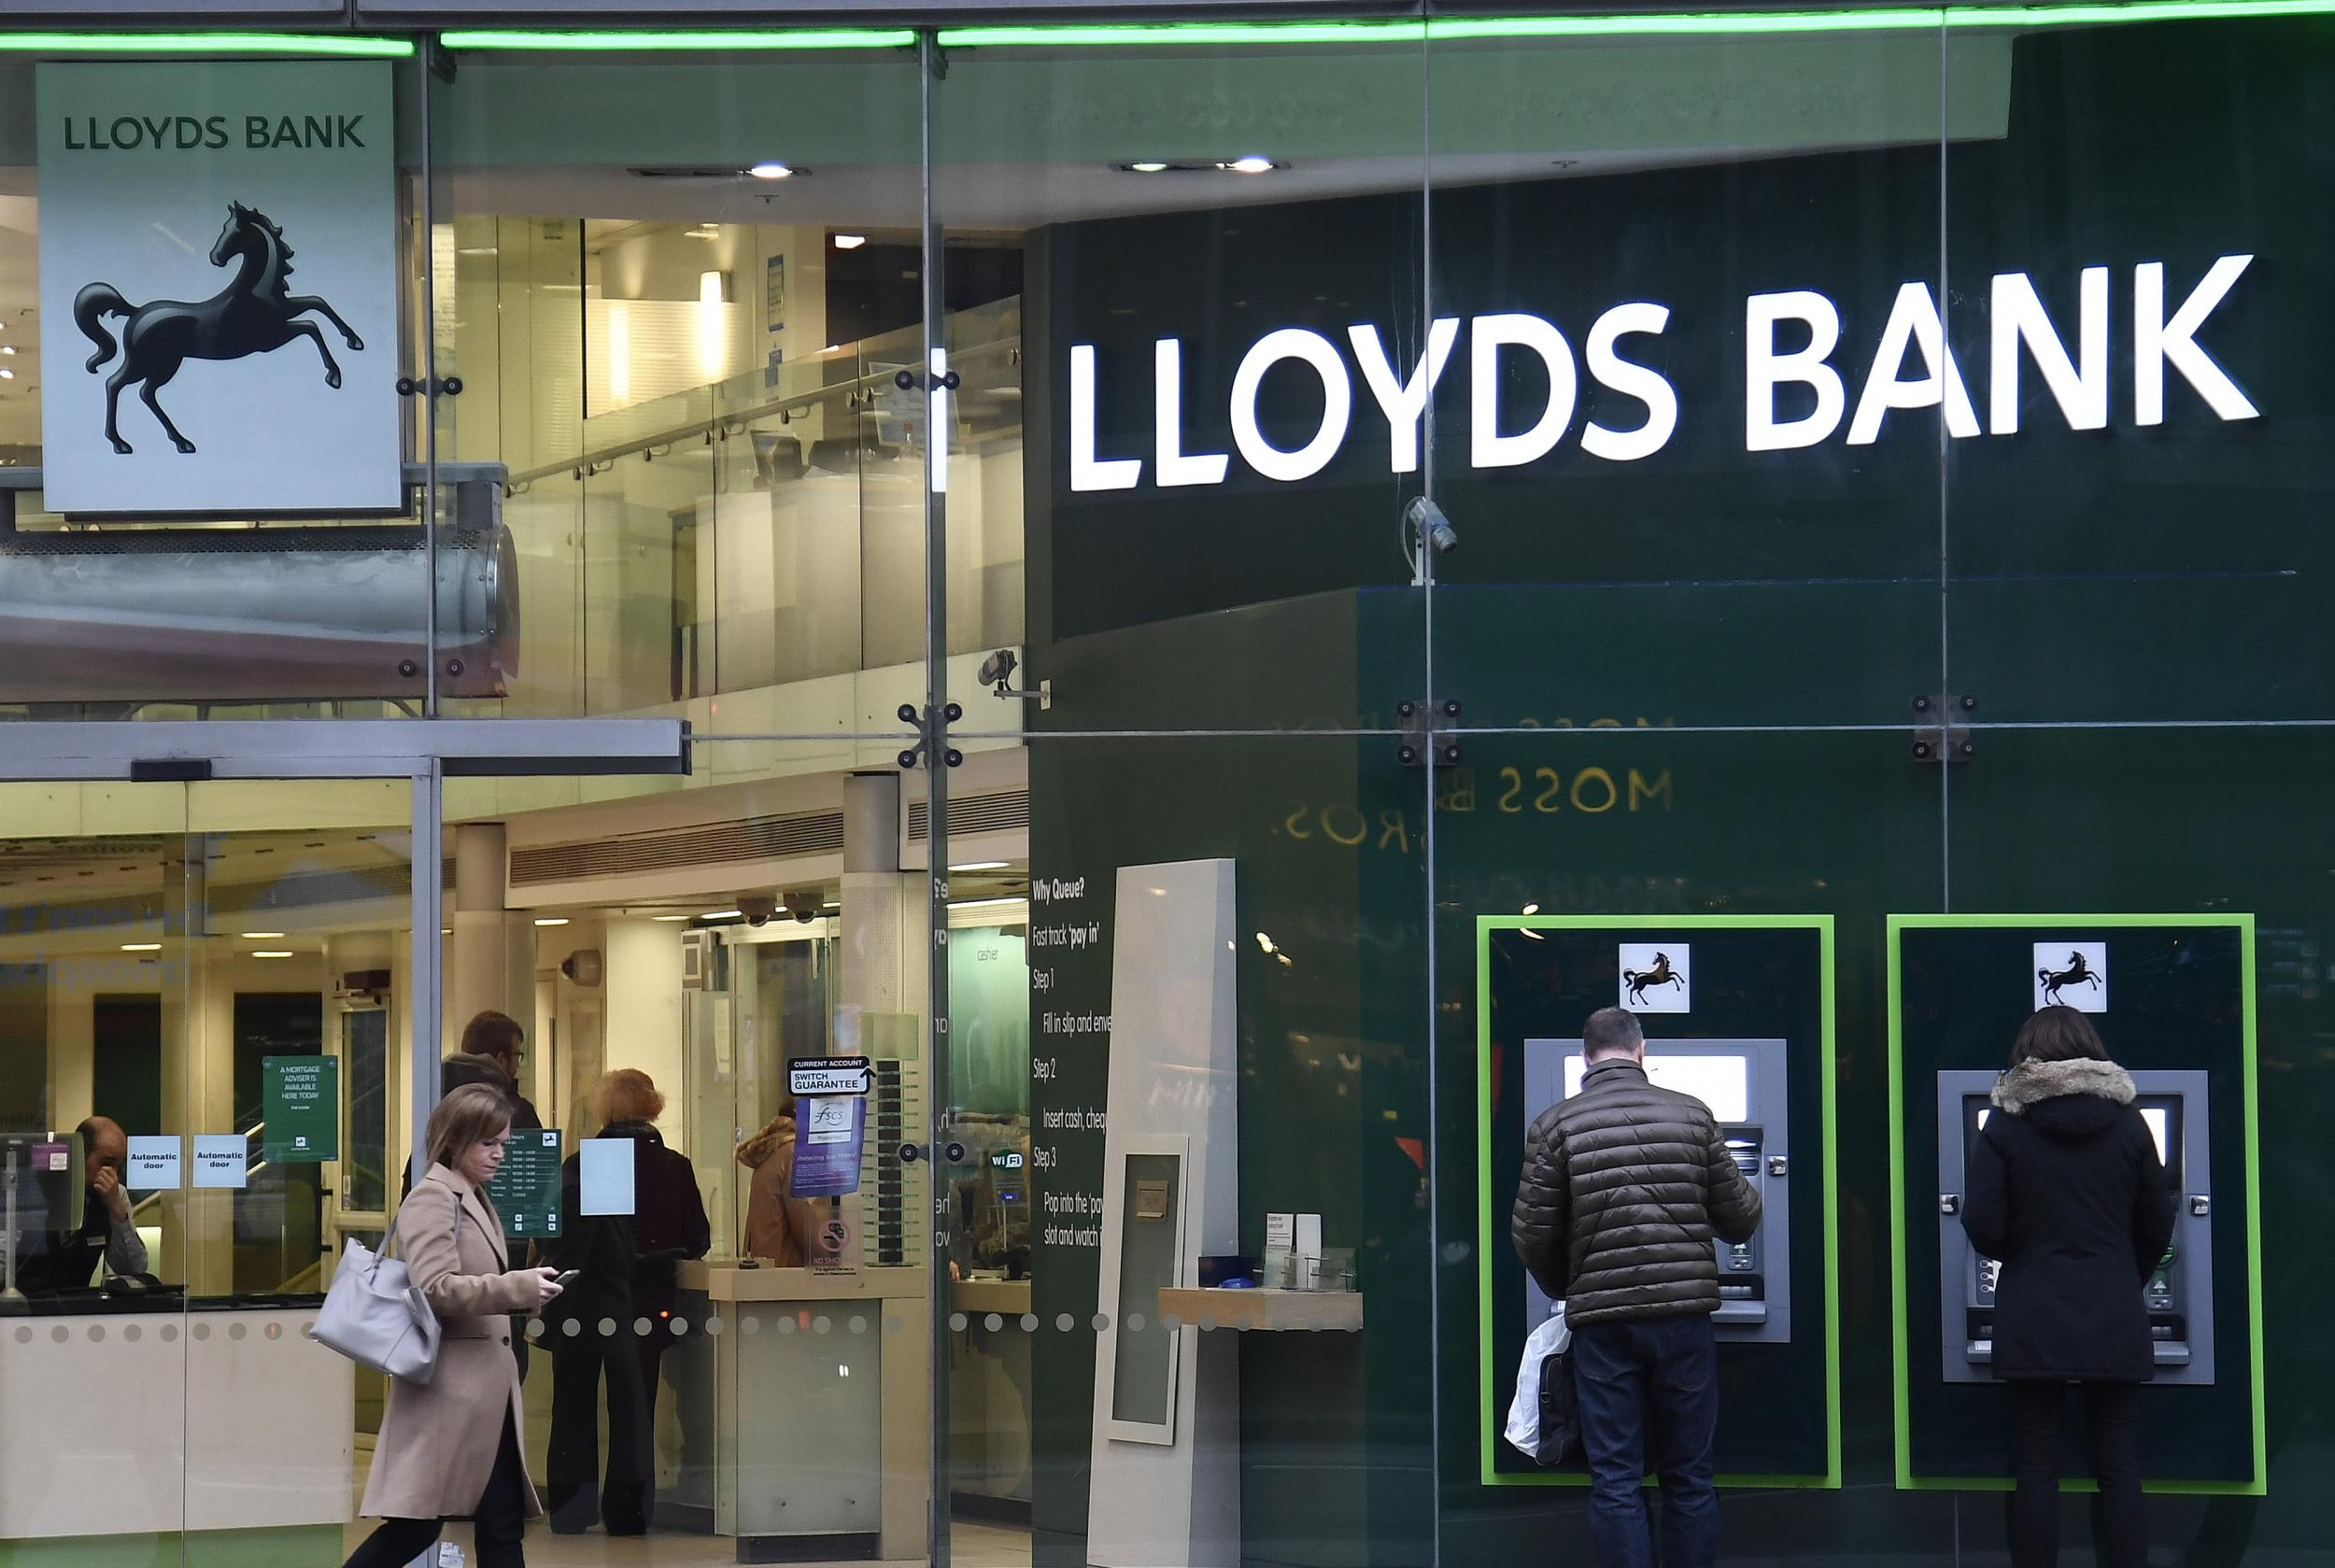 Lloyds bank latest news breaking stories and comment the lloyds bank latest news breaking stories and comment the independent colourmoves